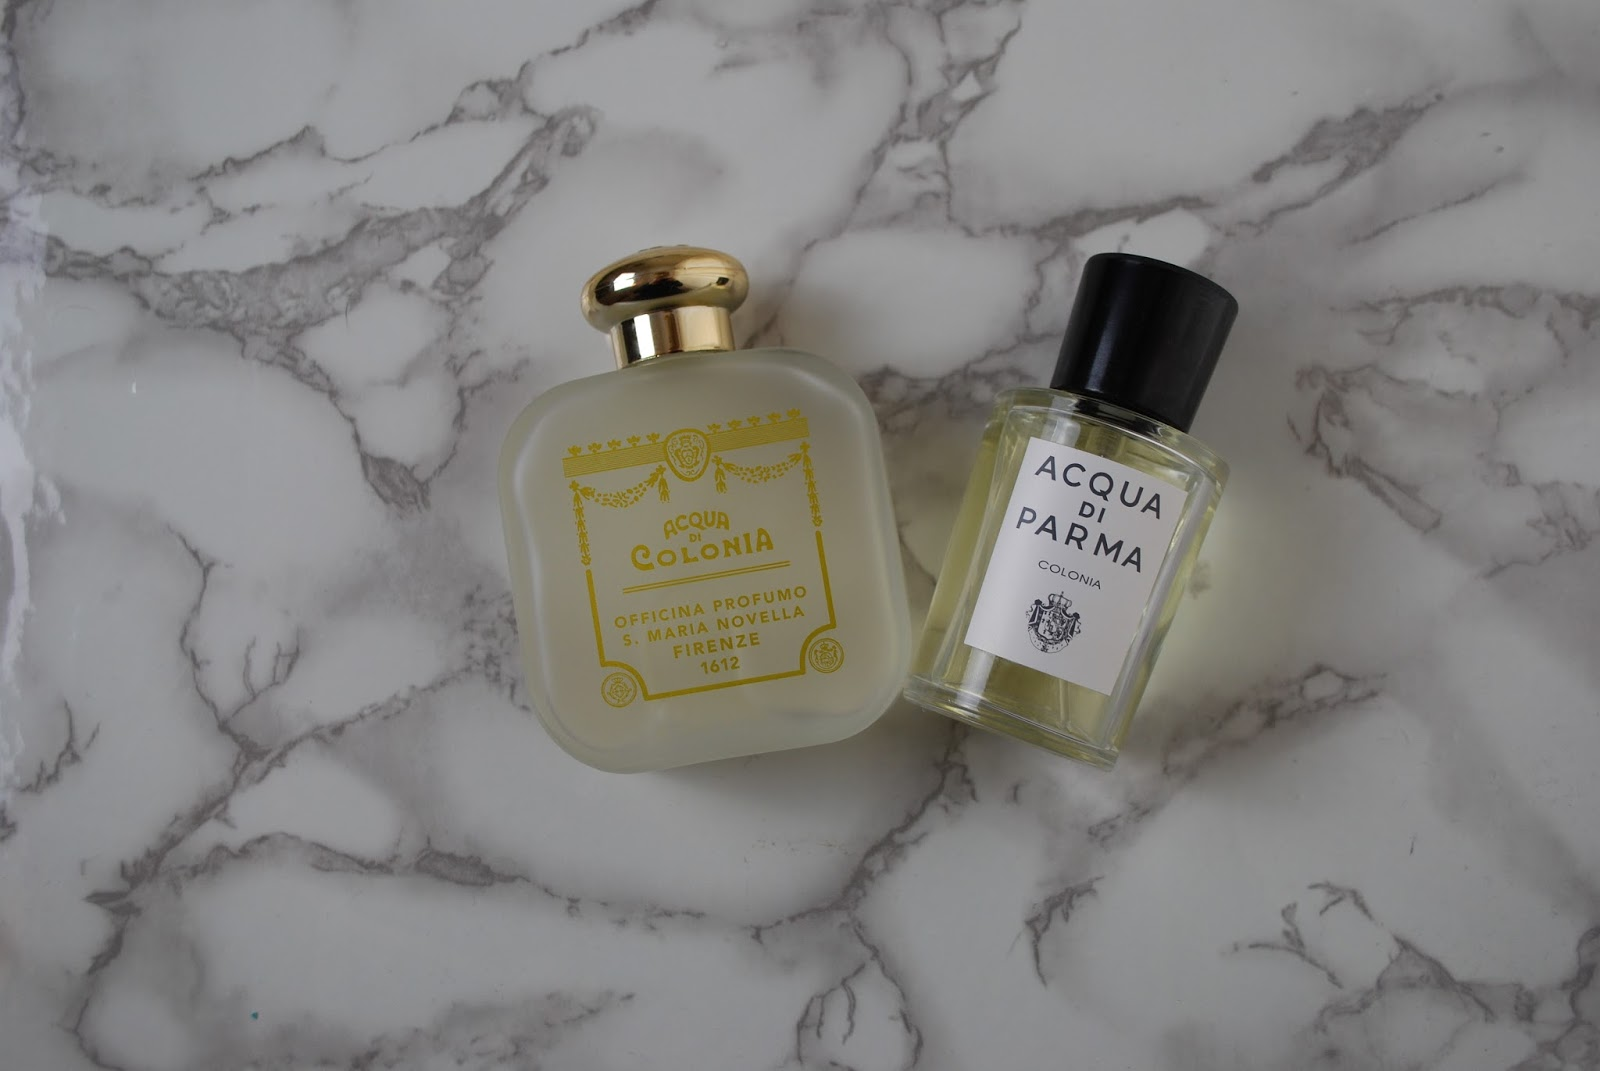 best botanical fragrances best natural fragrance floral fragrance acqua di parma review Santa Maria novella review